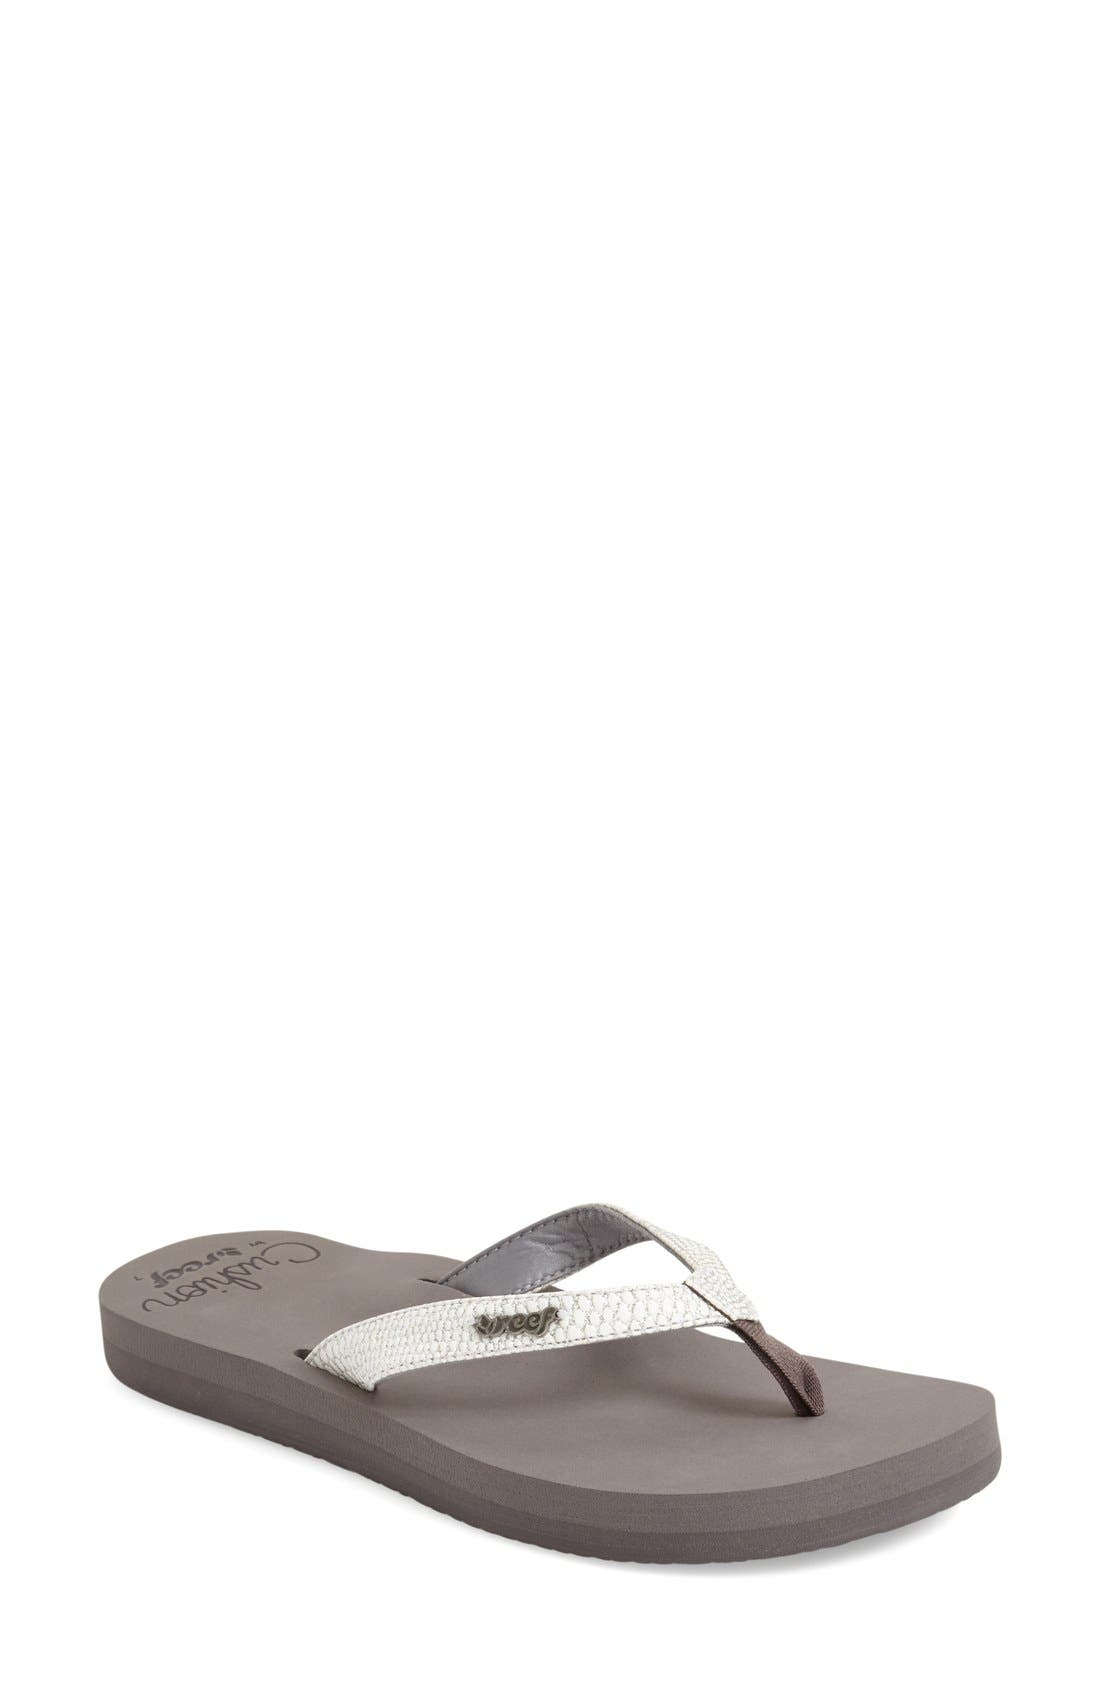 Alternate Image 1 Selected - Reef 'Star' Flip Flop (Women)